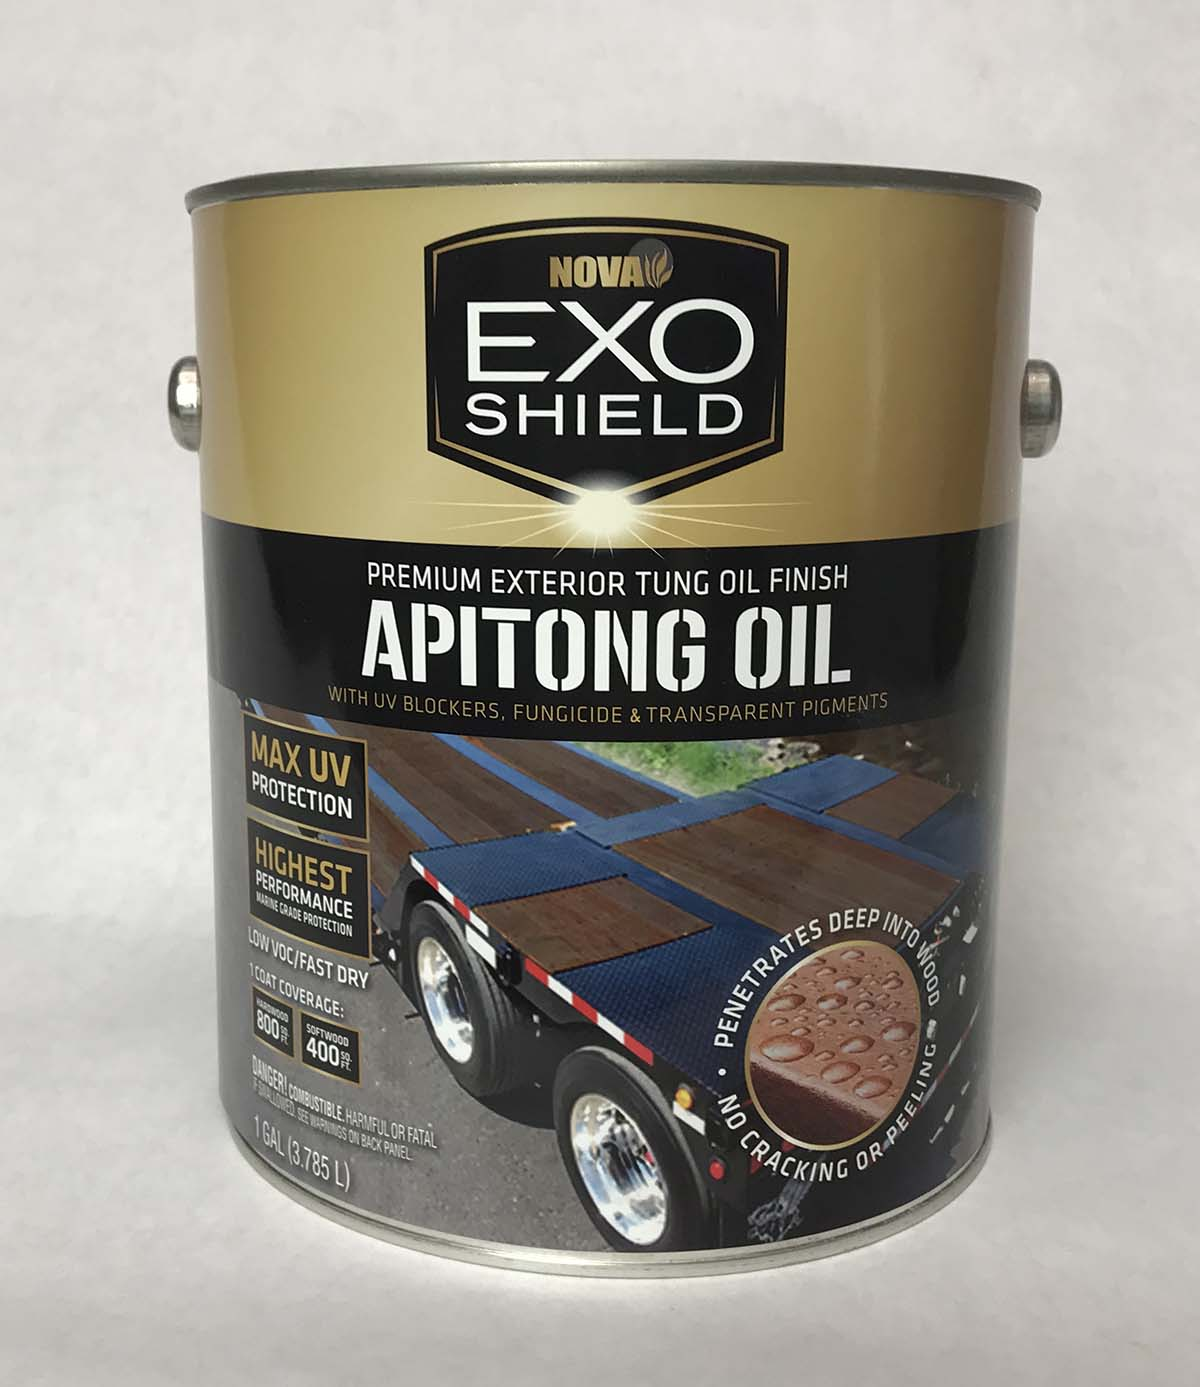 APITONG OIL Exterior Oil Based Wood Stain